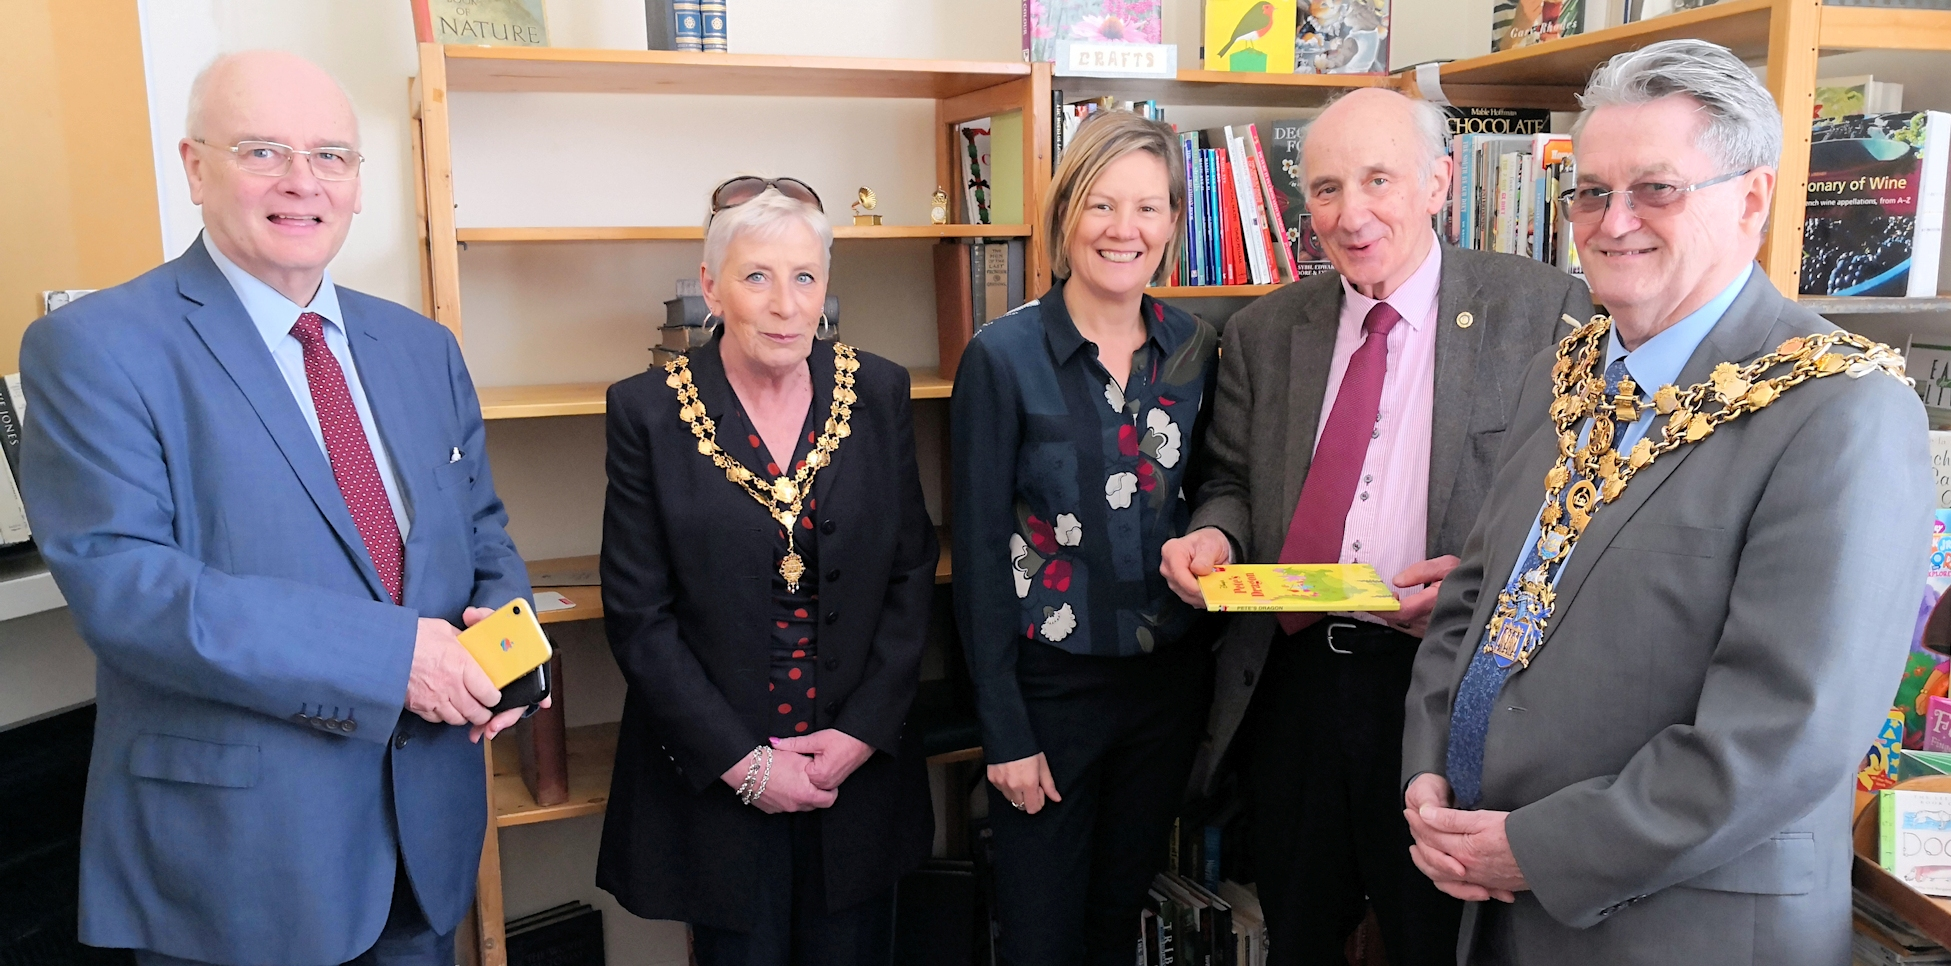 Grand opening of the bookshop - (left to right) Councillor Gordon Bambridge, executive member for growth, Breckland Council; Wisbech mayoress Mrs Janet Tanfield; Charlotte Gilsenan, new chief executive officer of Bankside Open Spaces Trust; Mr Peter Clayton, chairman of Octavia Hill Birthplace Museum Trust; Wisbech mayor Councillor Peter Human